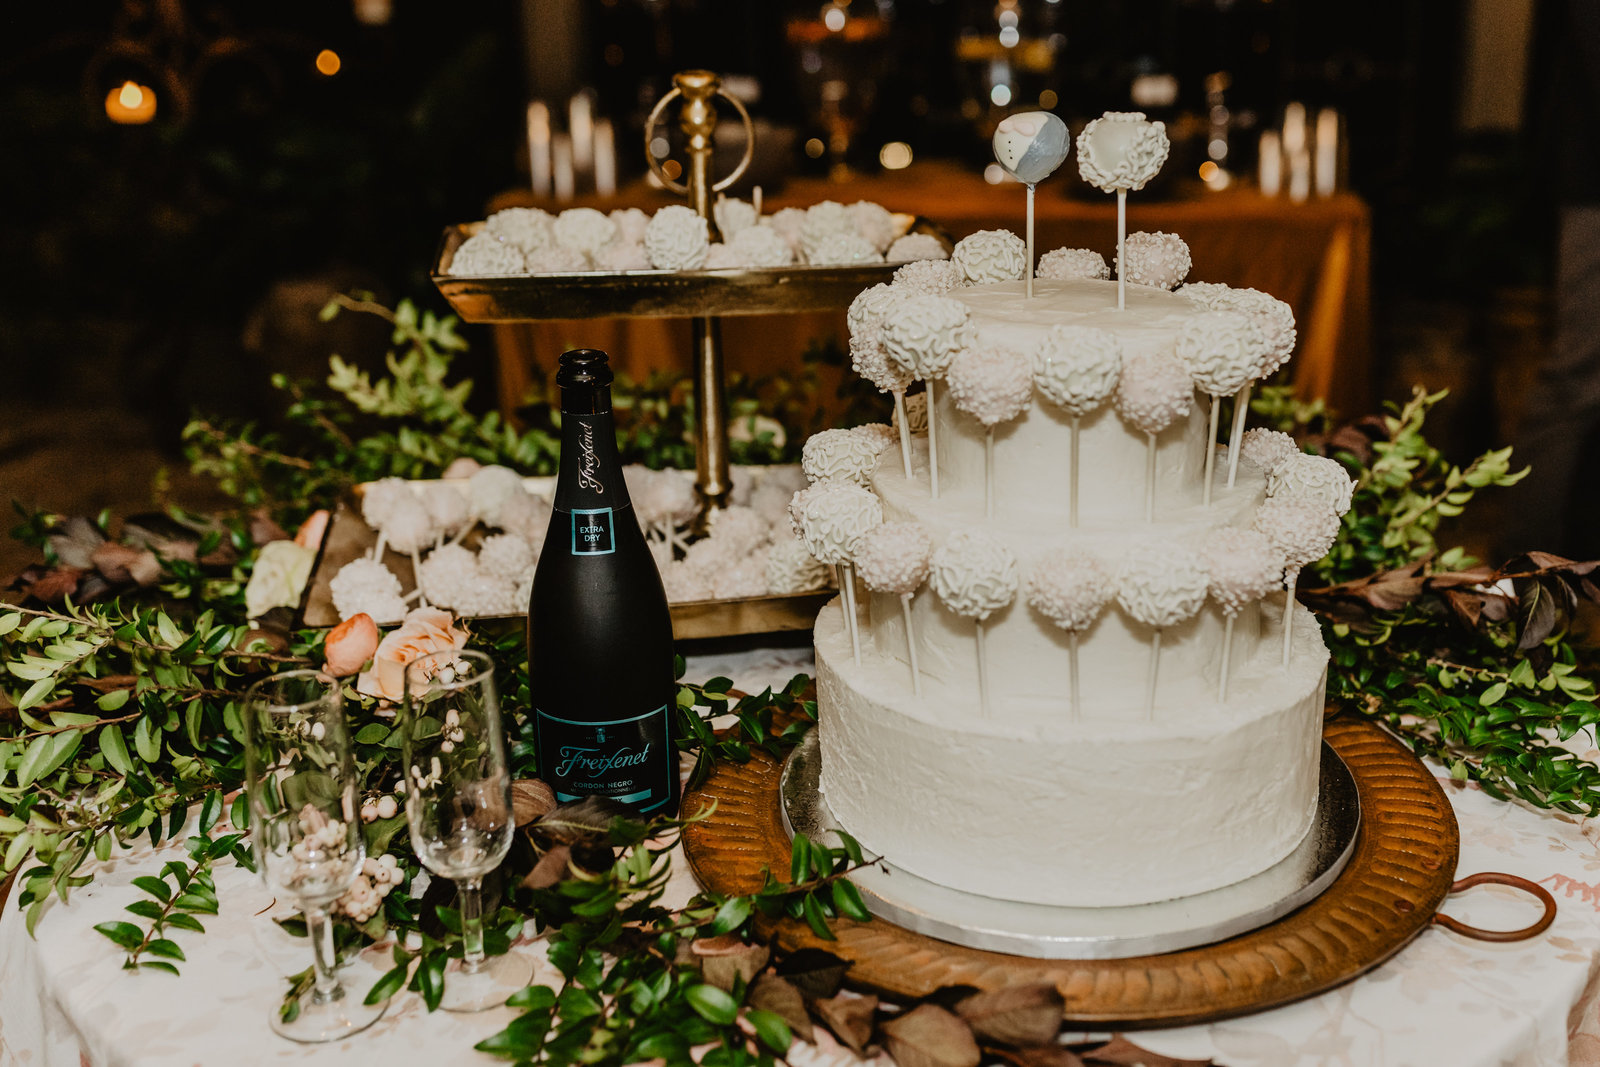 Cake Pops Make a delicious twist instead classic wedding cake